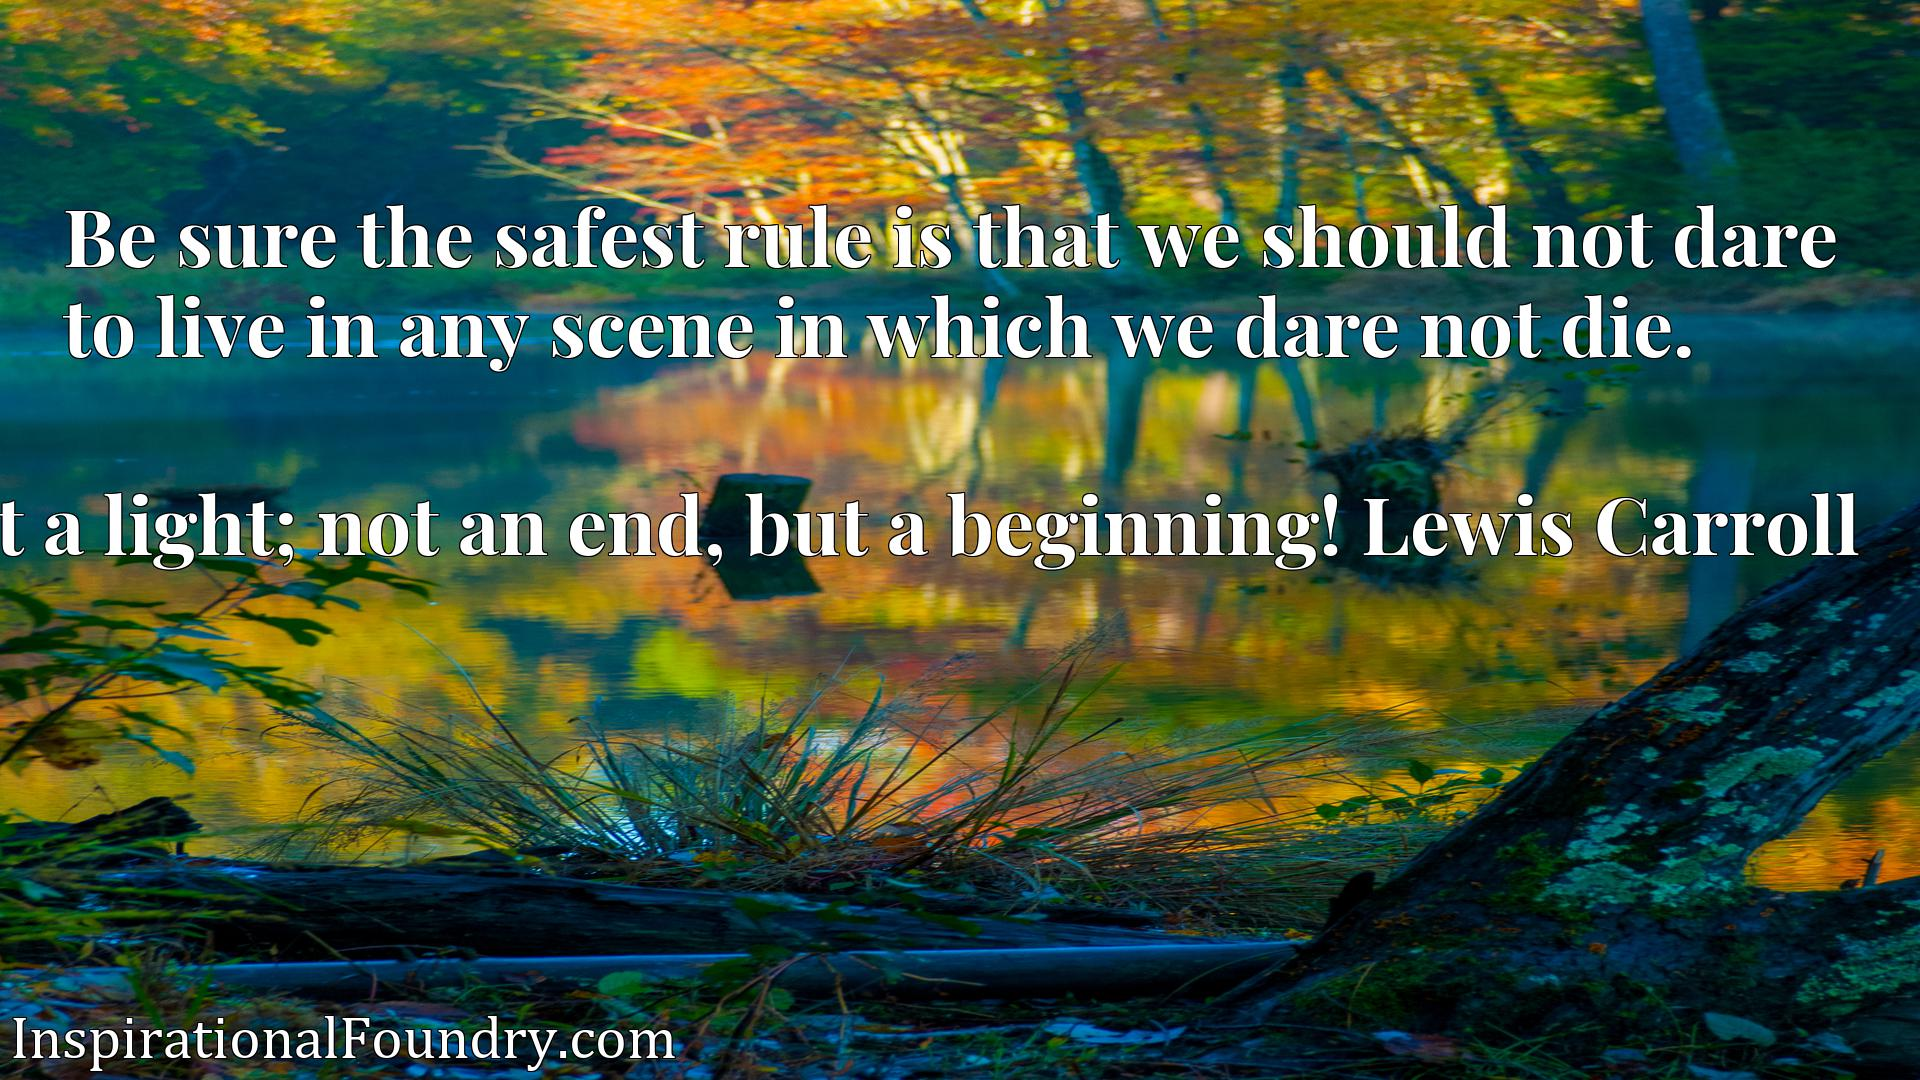 Be sure the safest rule is that we should not dare to live in any scene in which we dare not die.